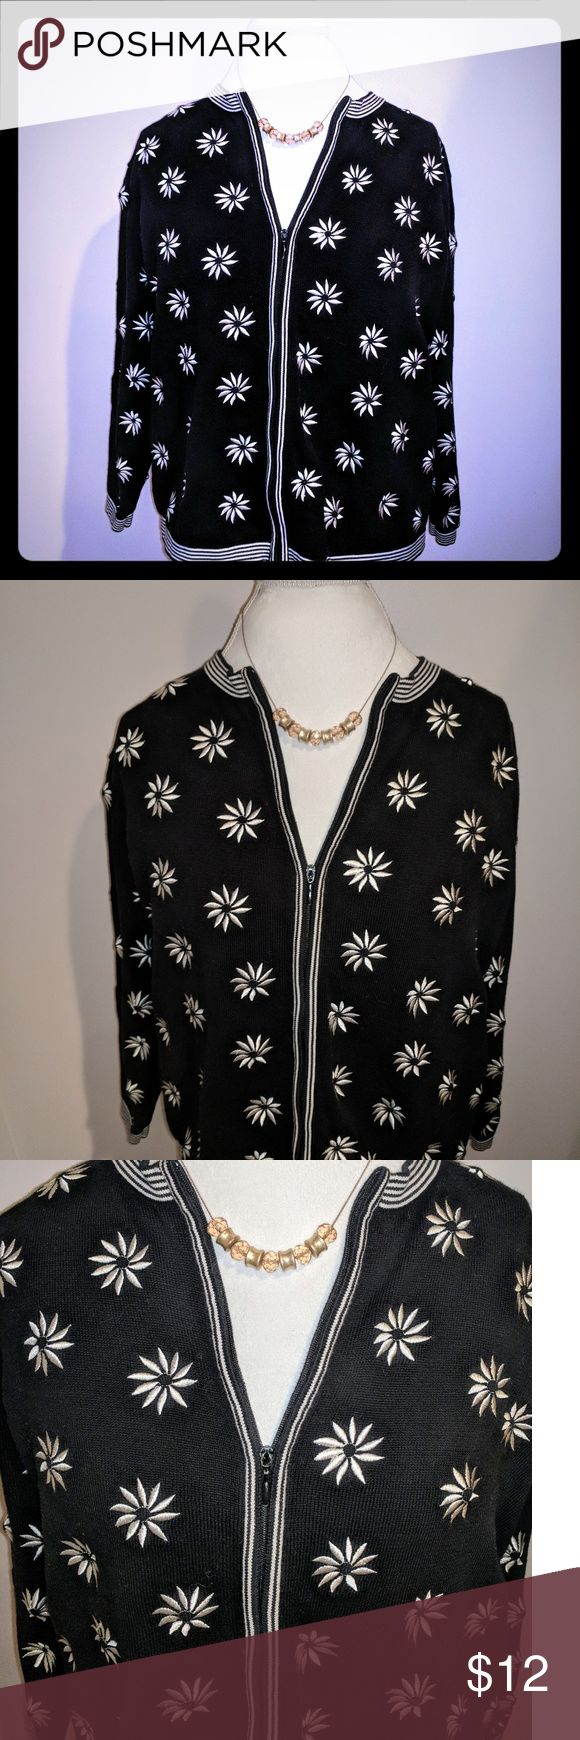 Talbot's Petite Zip Up Sweater Embroidered cream colored flowers, lovely detail and perfect for a casual or dressy occasion. Size is 1X but looks more like a L to me. Clean and from a smoke free home. Talbots Jackets & Coats